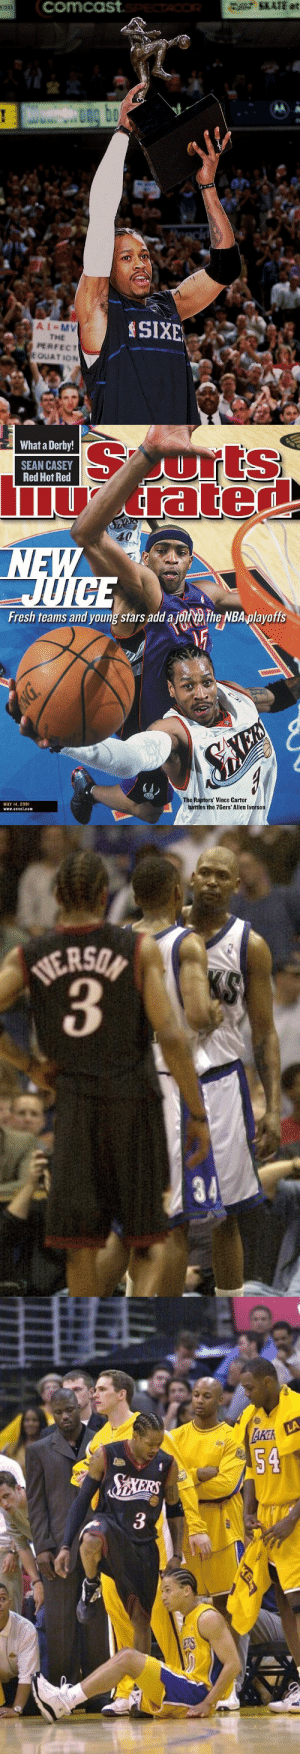 Iverson's Best games from the 2001 Playoffs  54 PTS (21-39 FG) 52 PTS, 7 AST (21-32 FG) 48 PTS, 6 AST, 5 STL 46 PTS (5-9 3PT) 45 PTS, 9 AST 44 PTS, 7 AST 35 PTS, 12 REB 21 PTS, 16 AST https://t.co/He7EKxILRo https://t.co/xPdk6pKSck: Iverson's Best games from the 2001 Playoffs  54 PTS (21-39 FG) 52 PTS, 7 AST (21-32 FG) 48 PTS, 6 AST, 5 STL 46 PTS (5-9 3PT) 45 PTS, 9 AST 44 PTS, 7 AST 35 PTS, 12 REB 21 PTS, 16 AST https://t.co/He7EKxILRo https://t.co/xPdk6pKSck